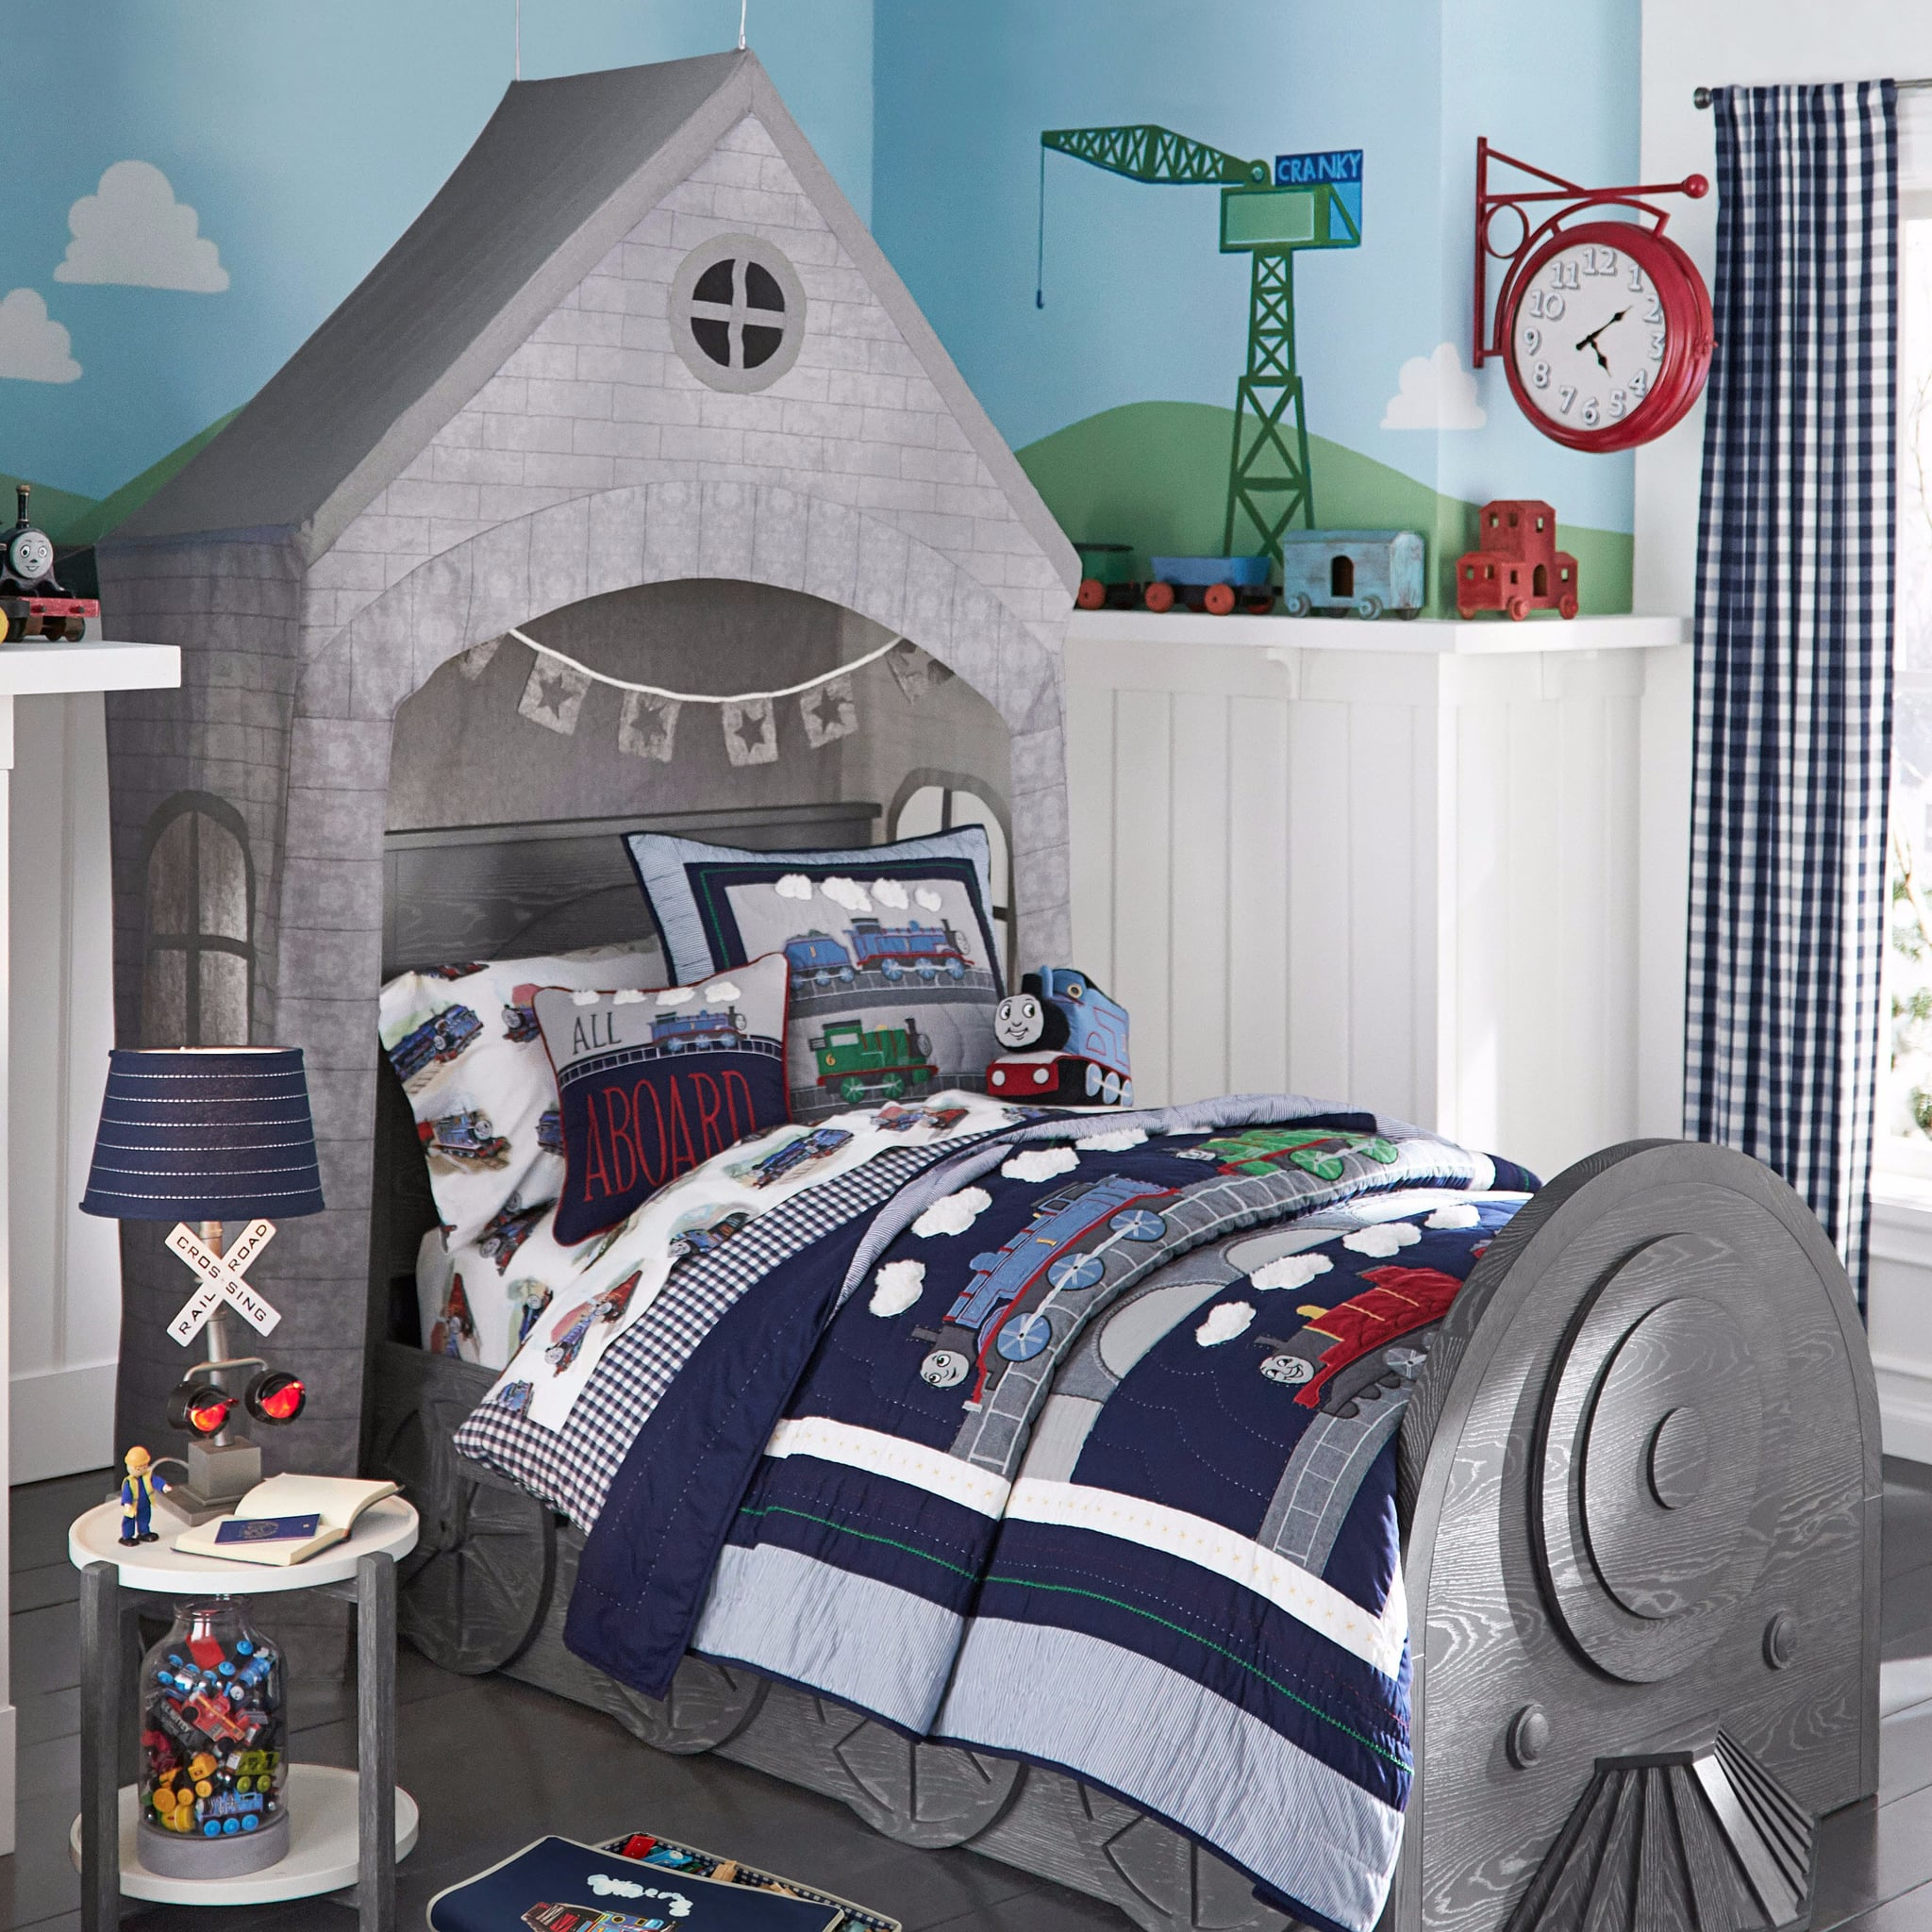 news barn amos designer exclusive pottery collaboration en margherita missoni room wire bedroom kids maccapani business home with margheritamissoniforpotterybarnkids barns debuts